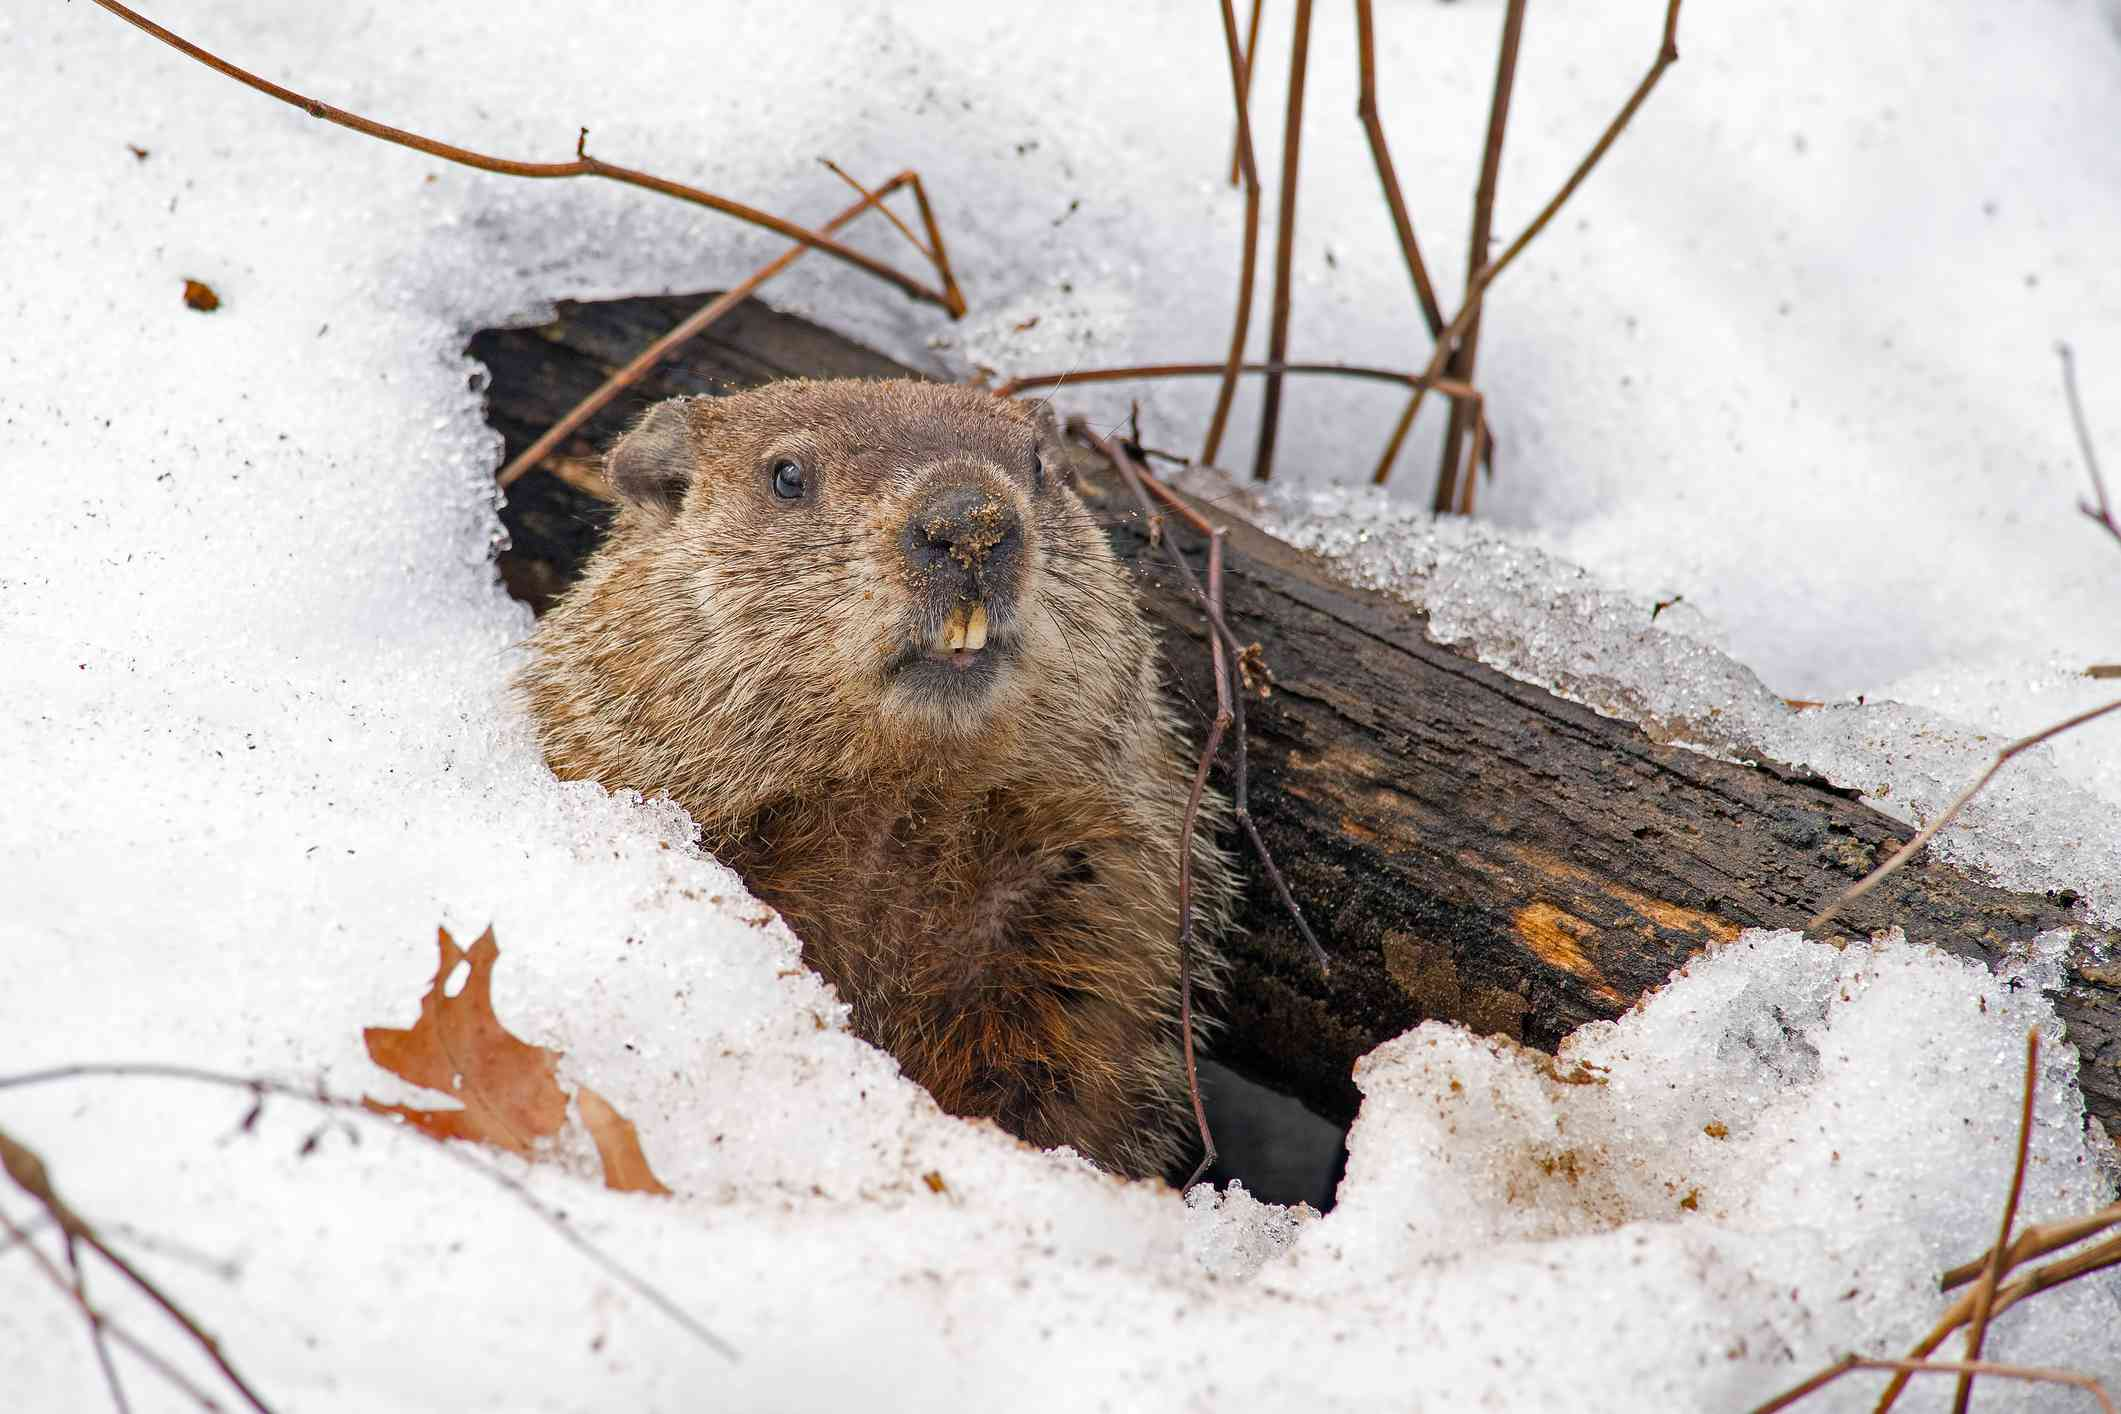 A groundhog emerging from its snowy den.